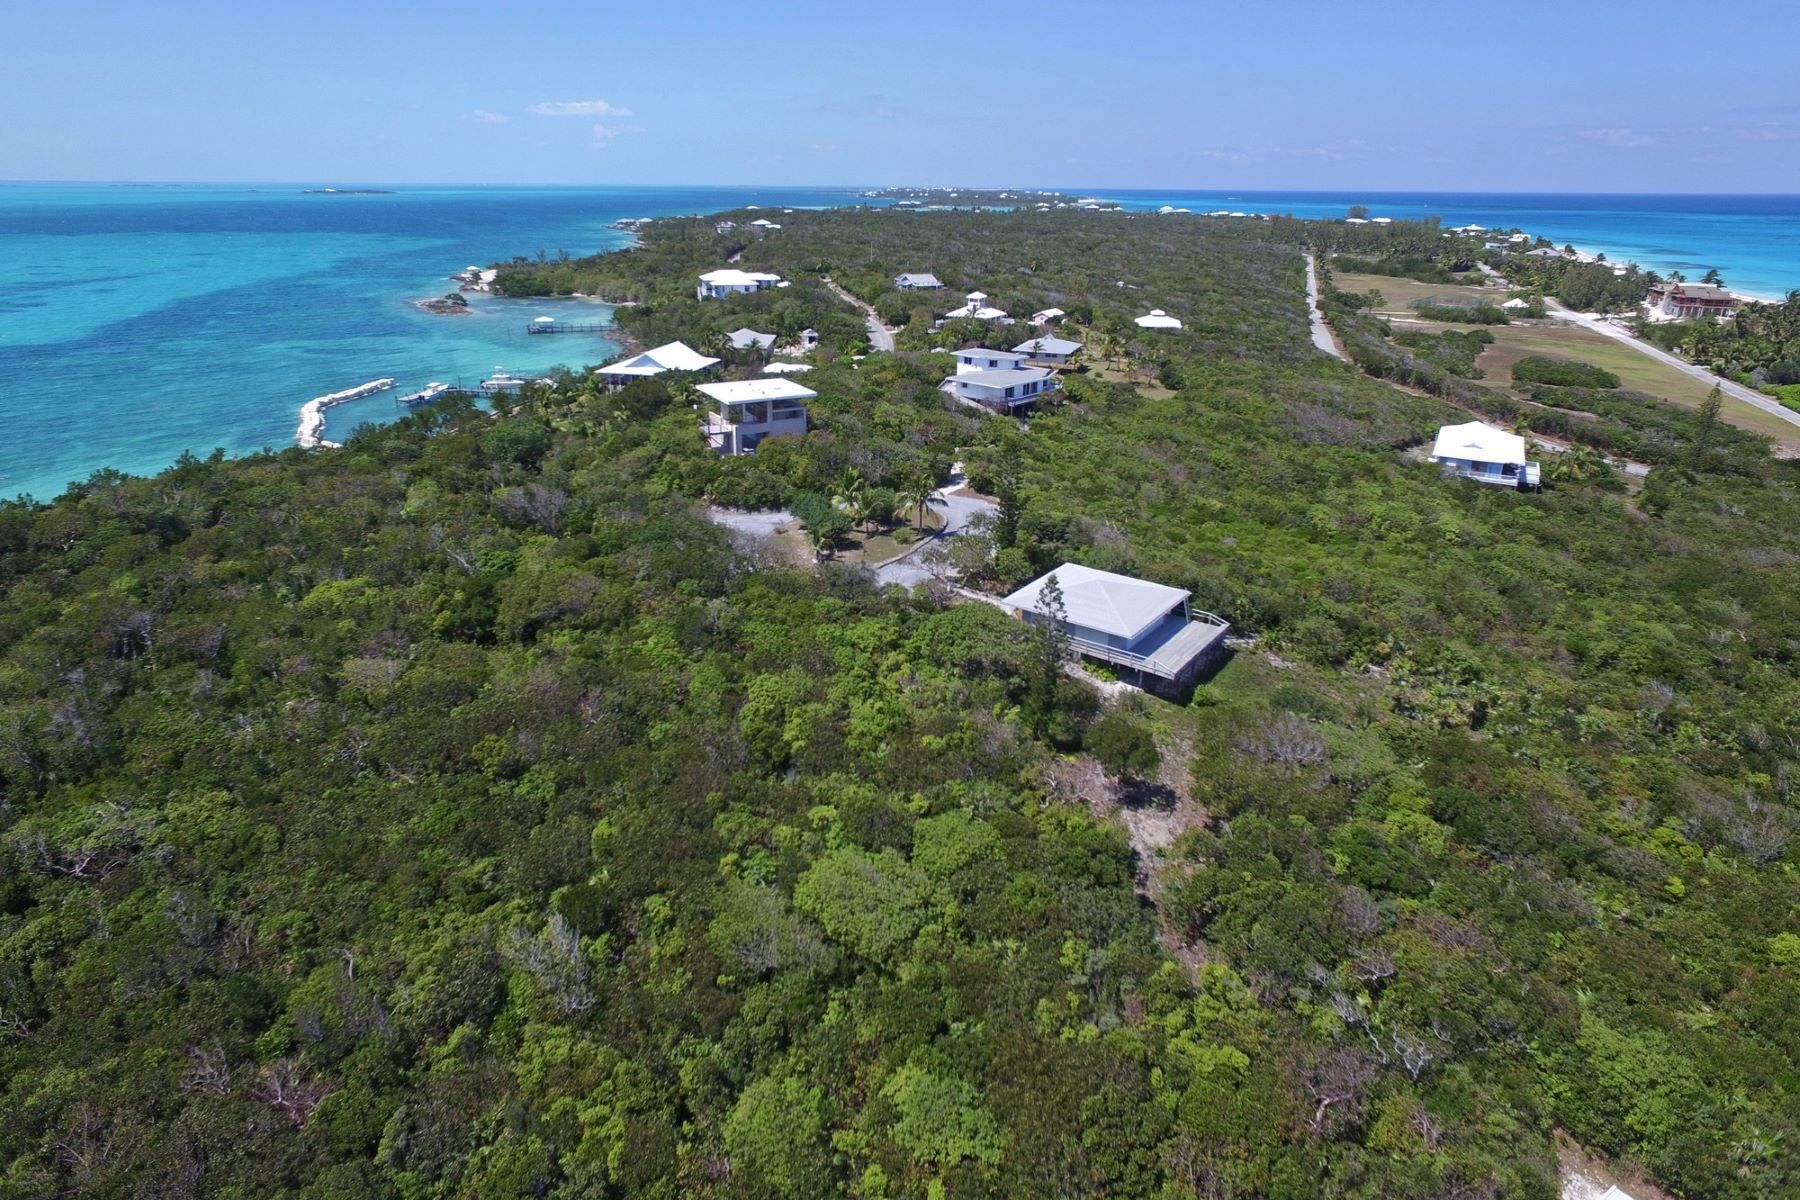 Land for Sale at Lot R17 Scotland Cay Scotland Cay, Abaco Bahamas